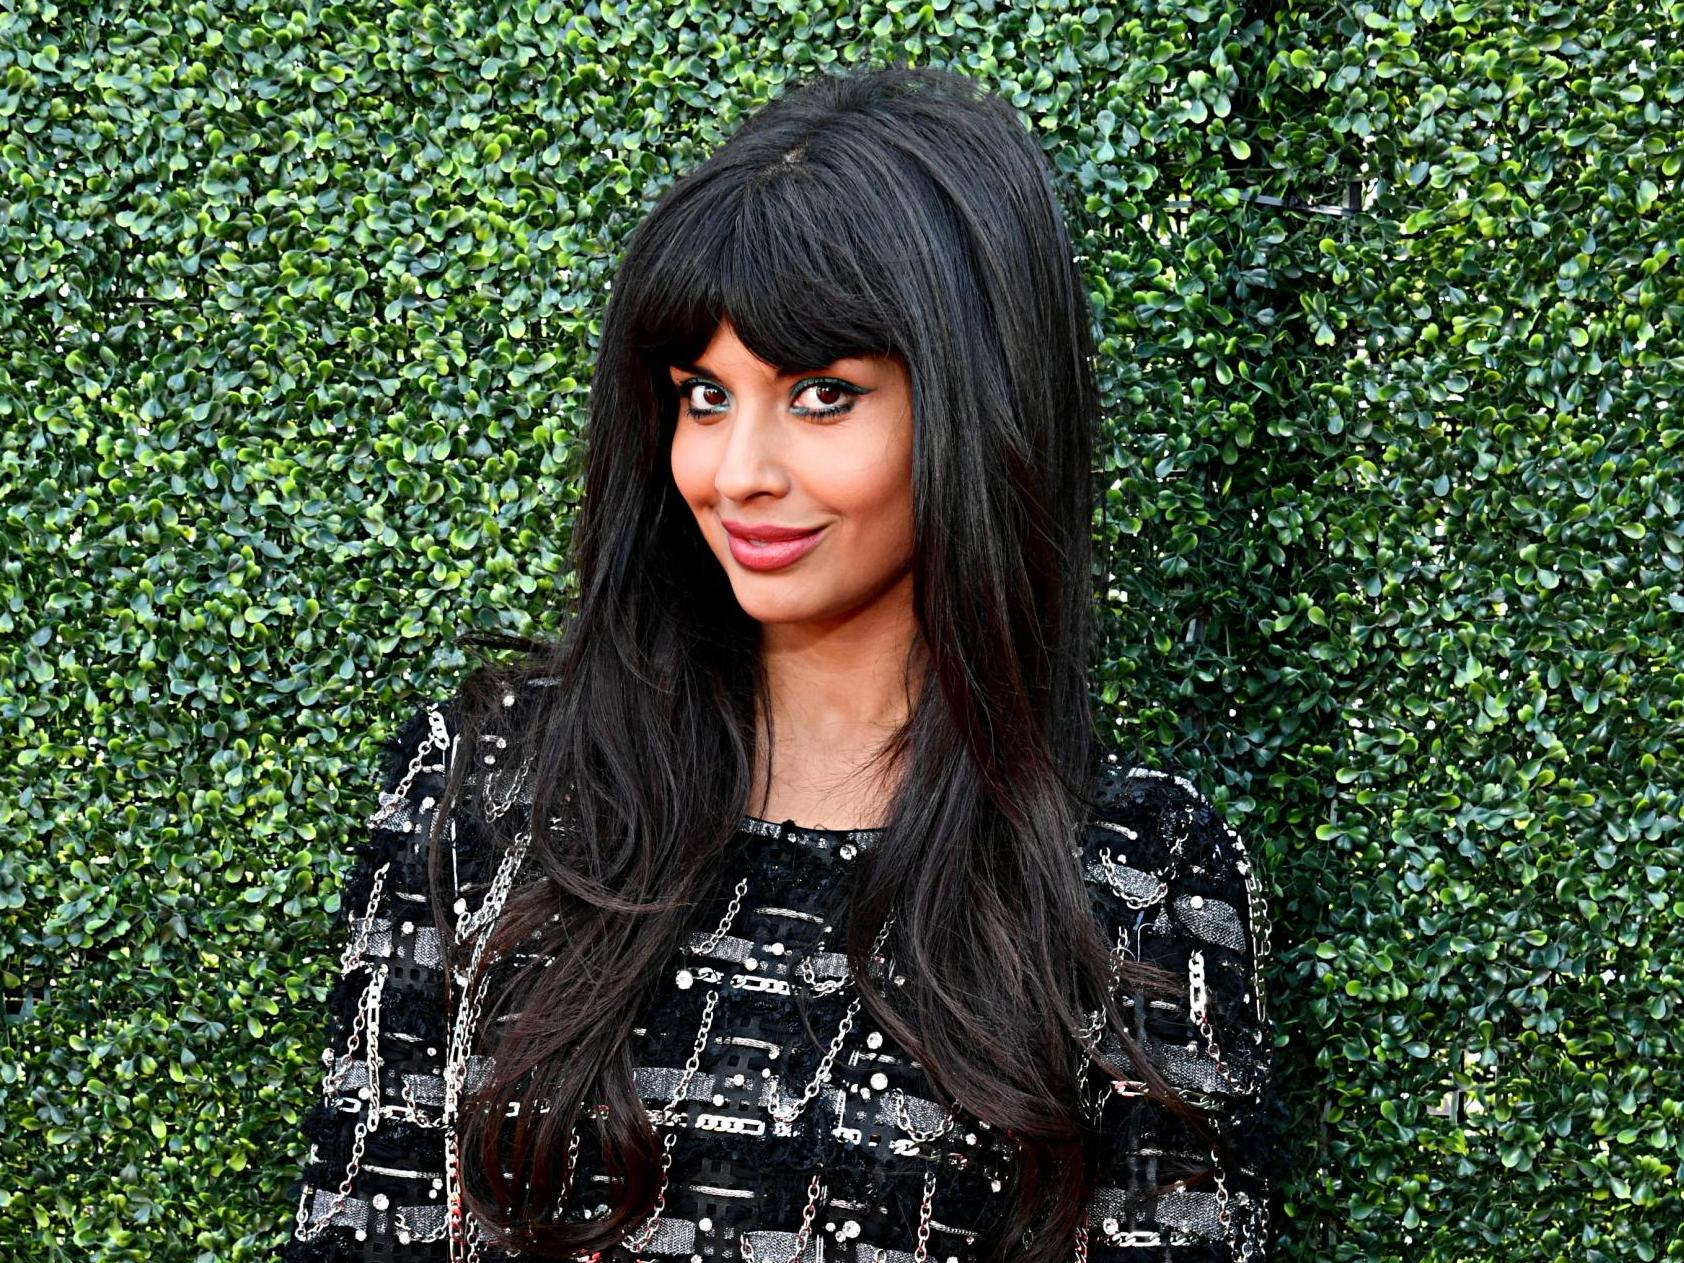 Jameela Jamil 'mortified' by UK's treatment of Meghan Markle: 'If [she] was white, the bold things she's doing would be celebrated'